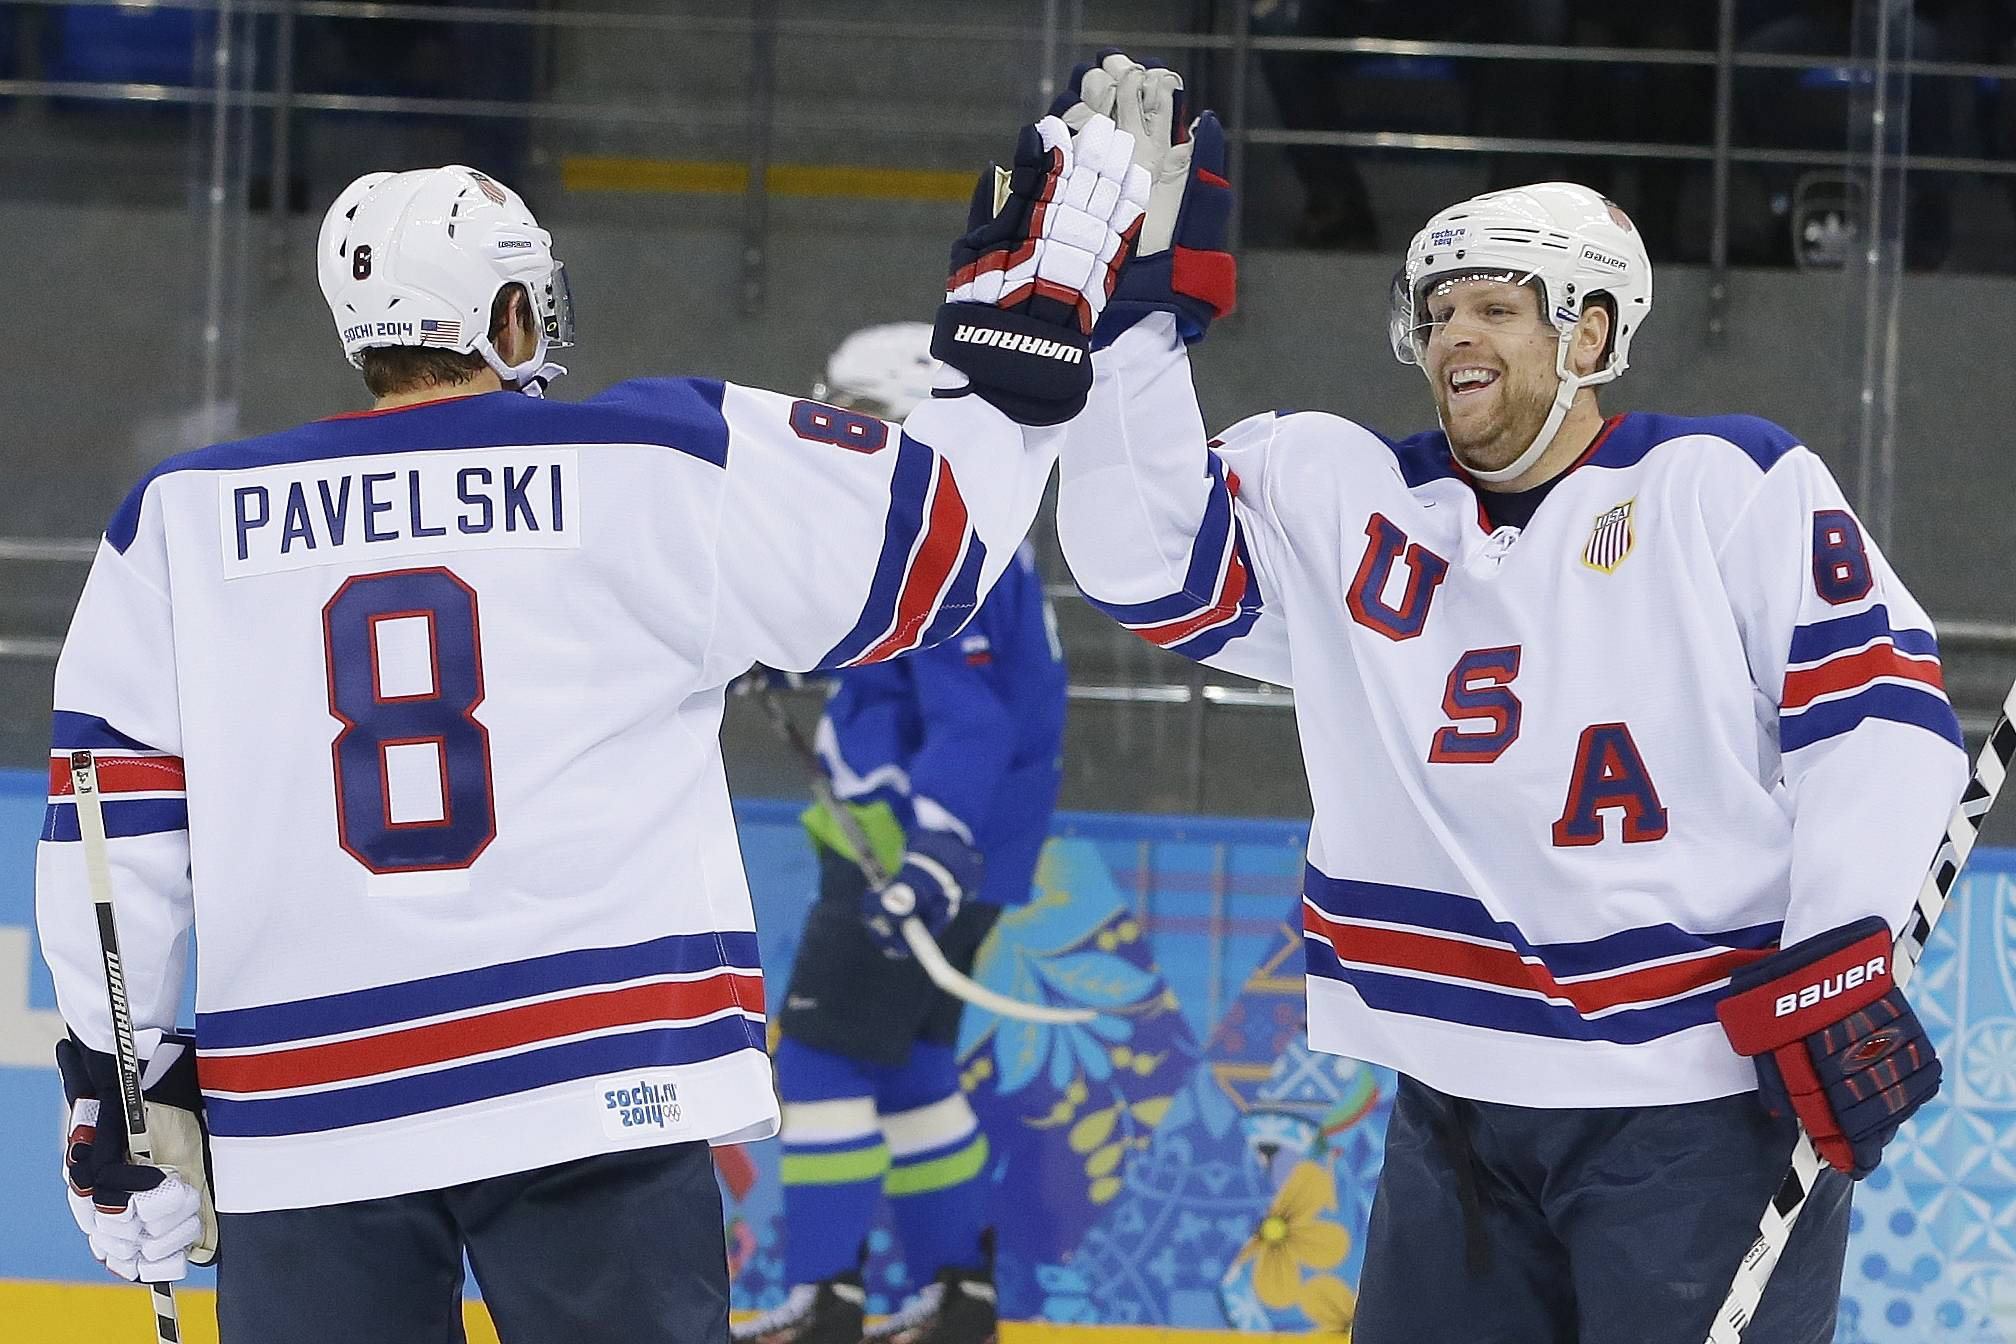 USA forward Phil Kessel, right, celebrates his second goal with teammate Joe Pavelski during the 2014 Winter Olympics men's ice hockey game against Slovenia at Shayba Arena Sunday, Feb. 16, 2014, in Sochi, Russia.